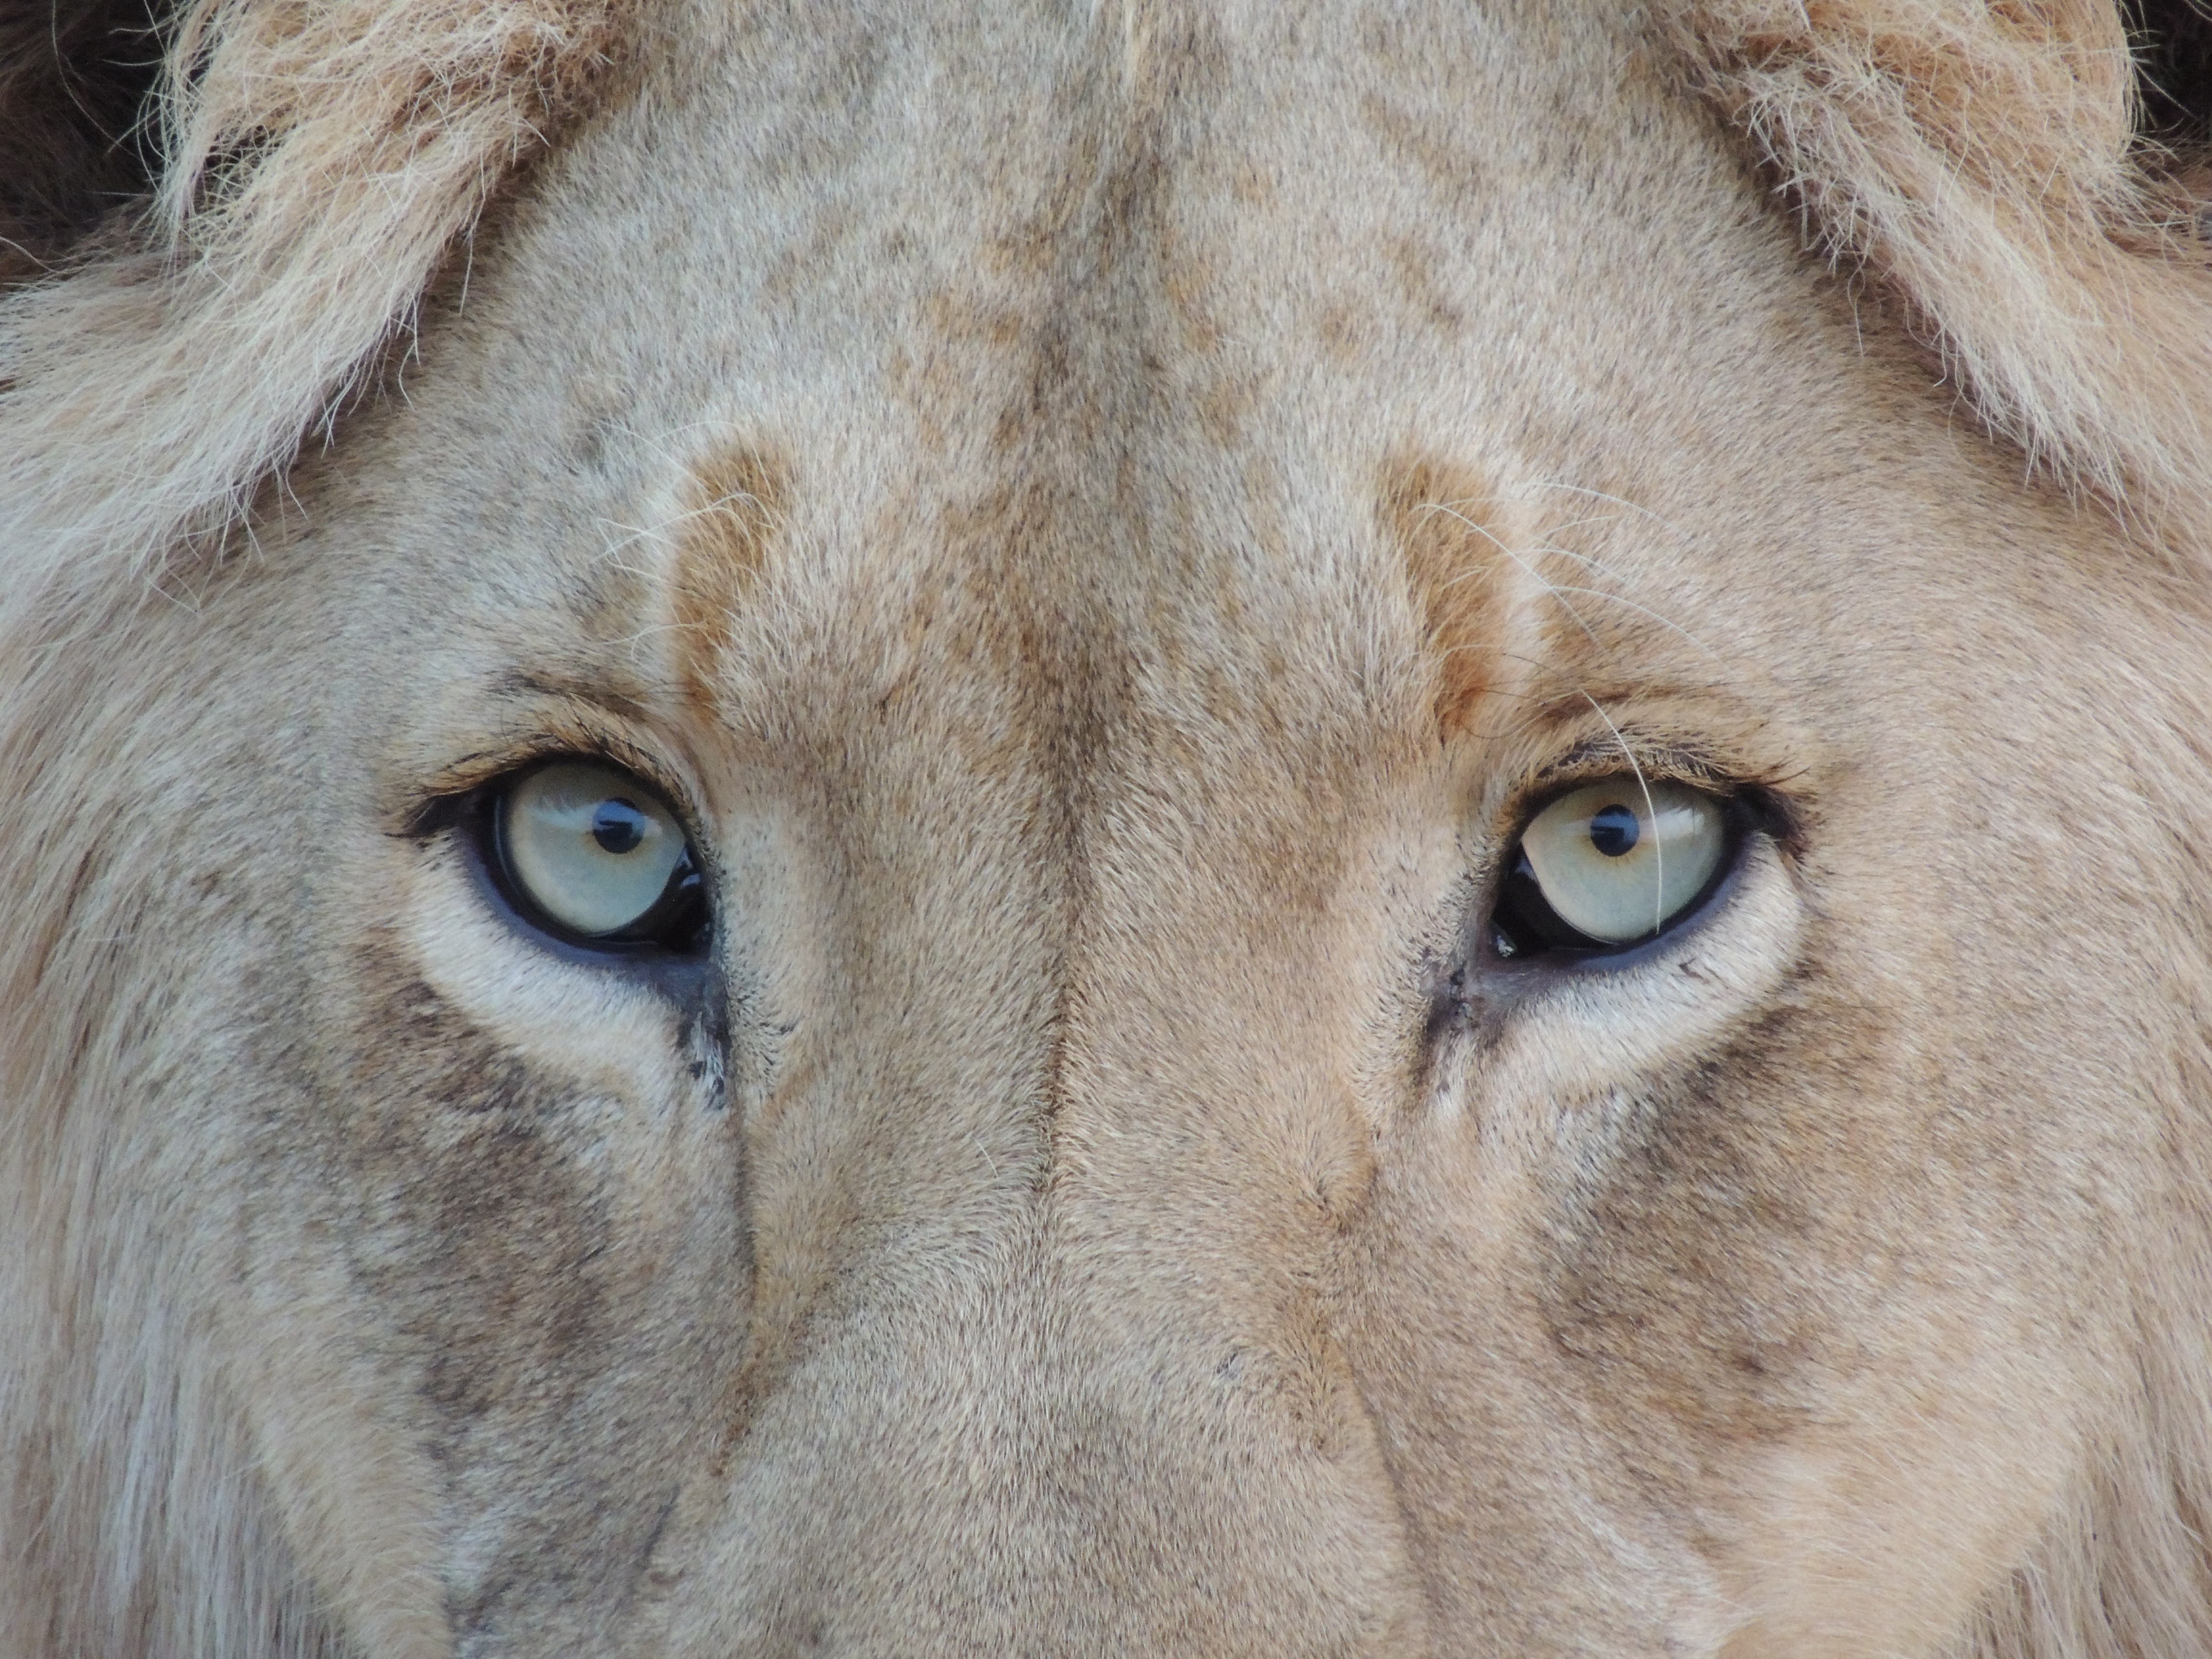 A close-up of a lion's eyes